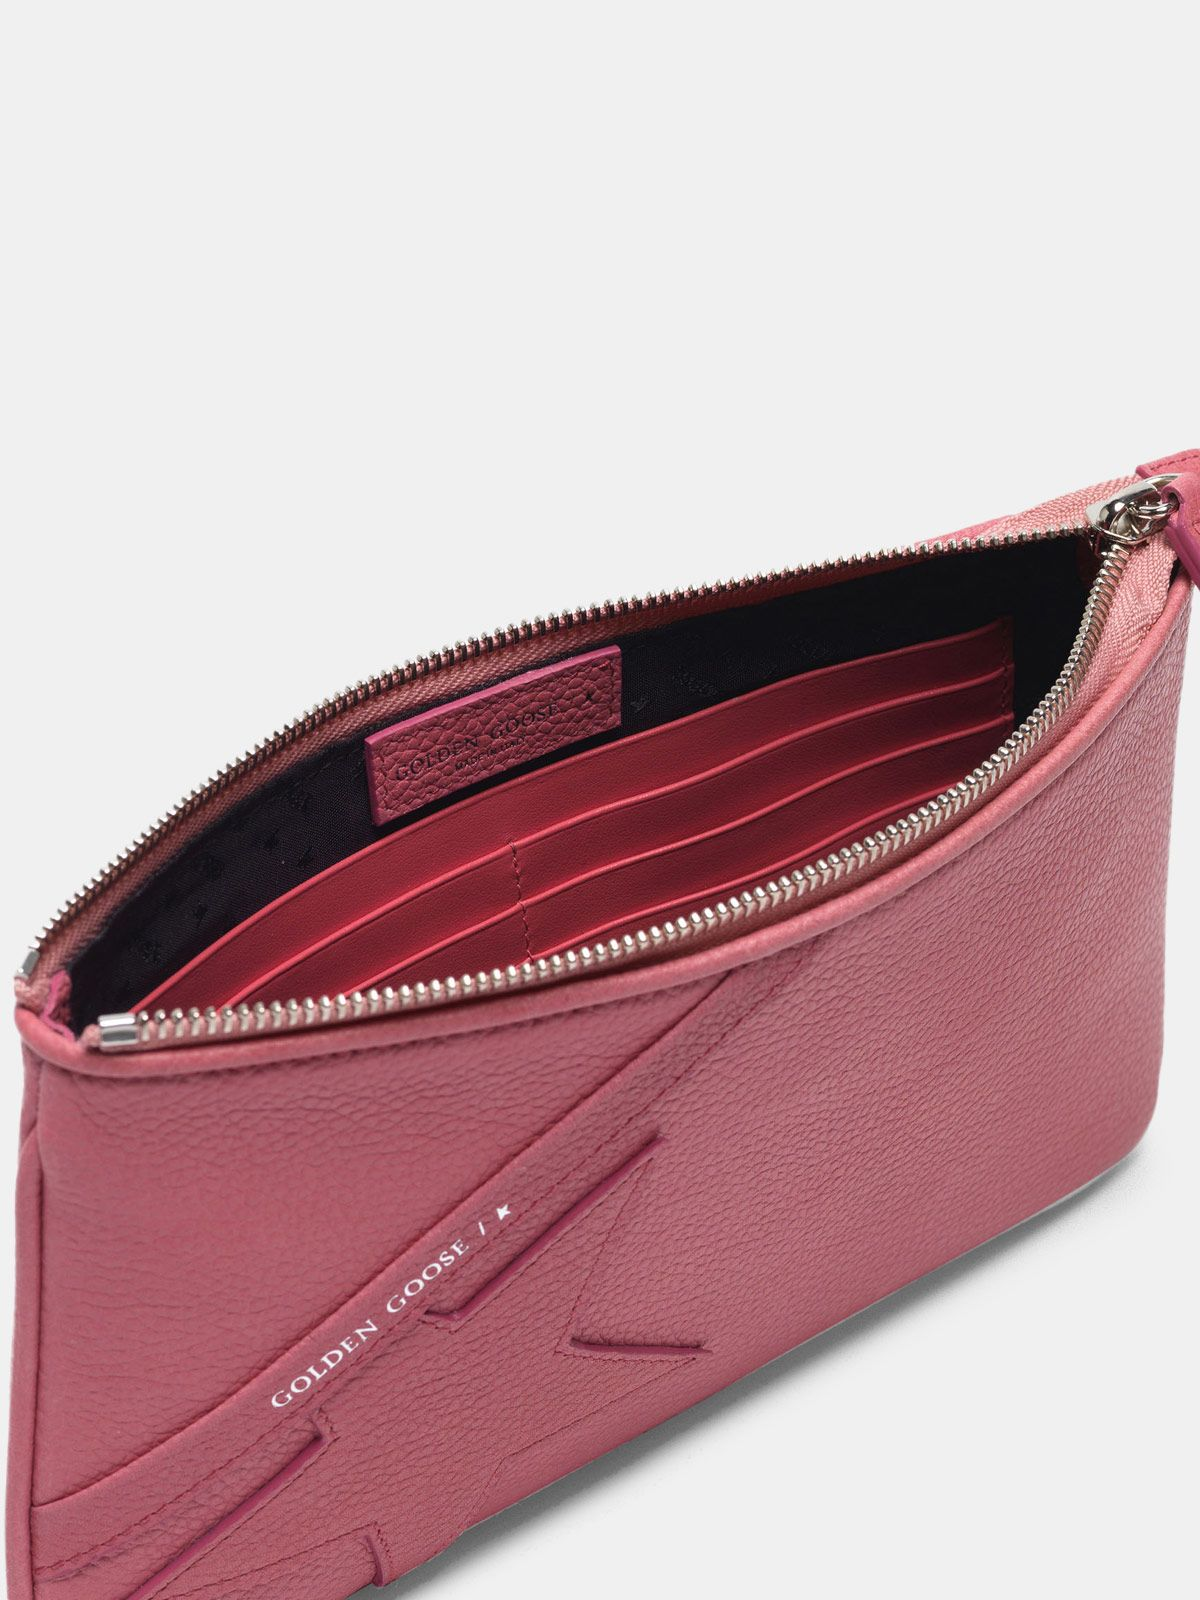 Golden Goose - Pink Star Wrist clutch bag in grained leather in